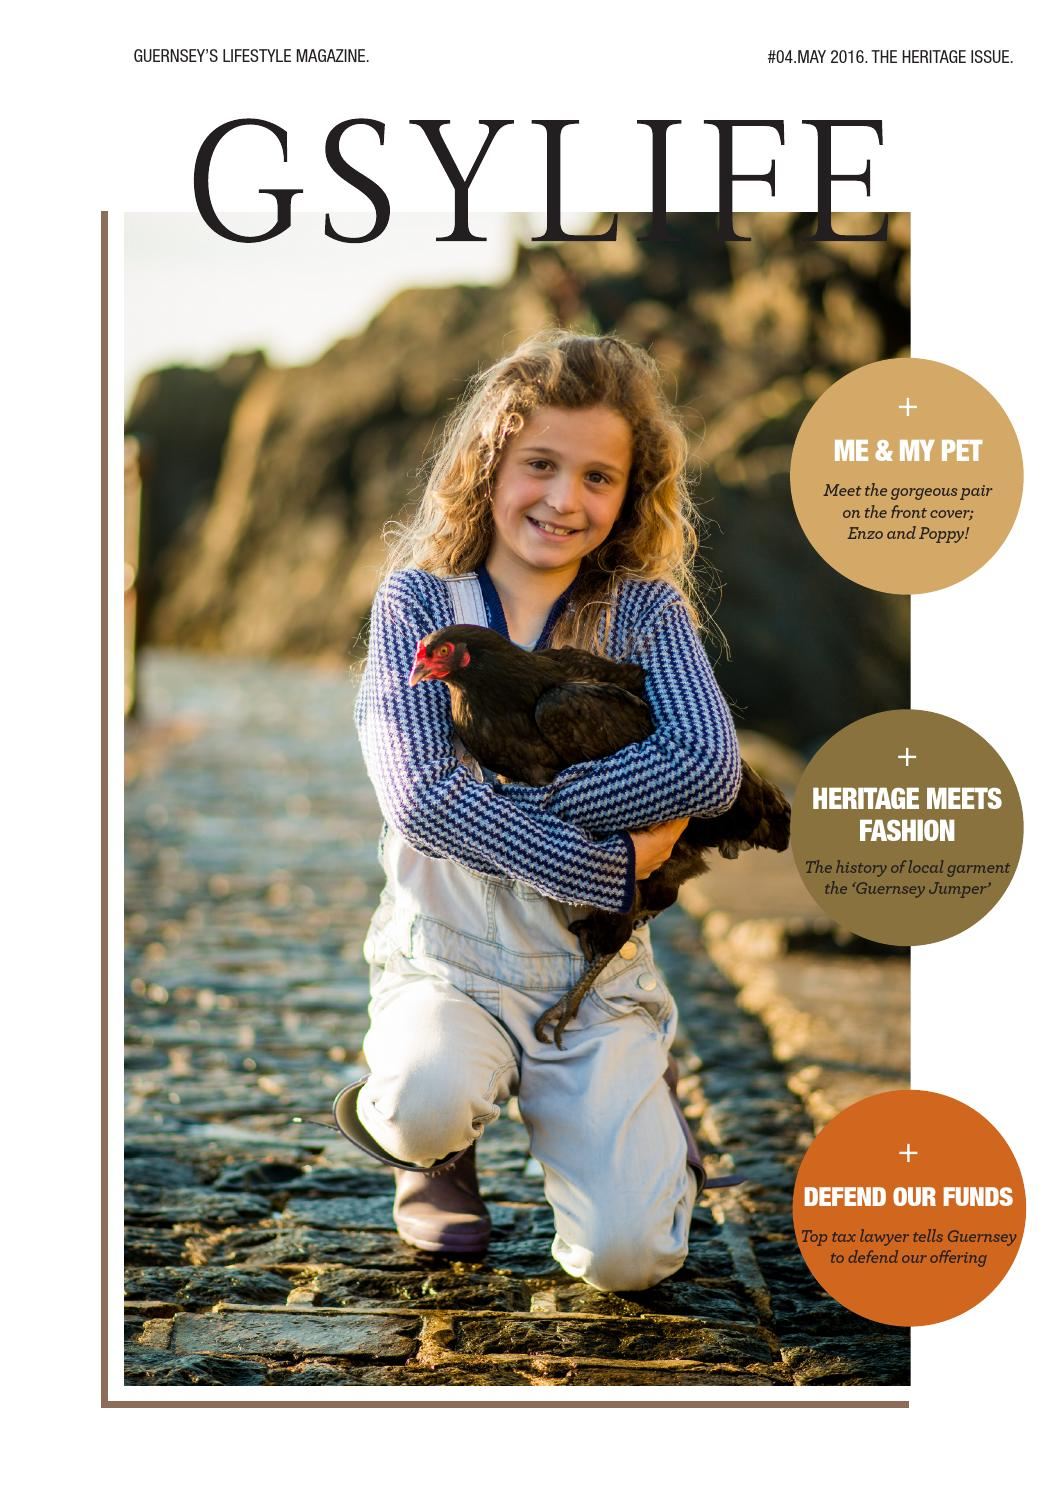 GSYLIFE 04 MAY 2016 THE HERITAGE ISSUE By